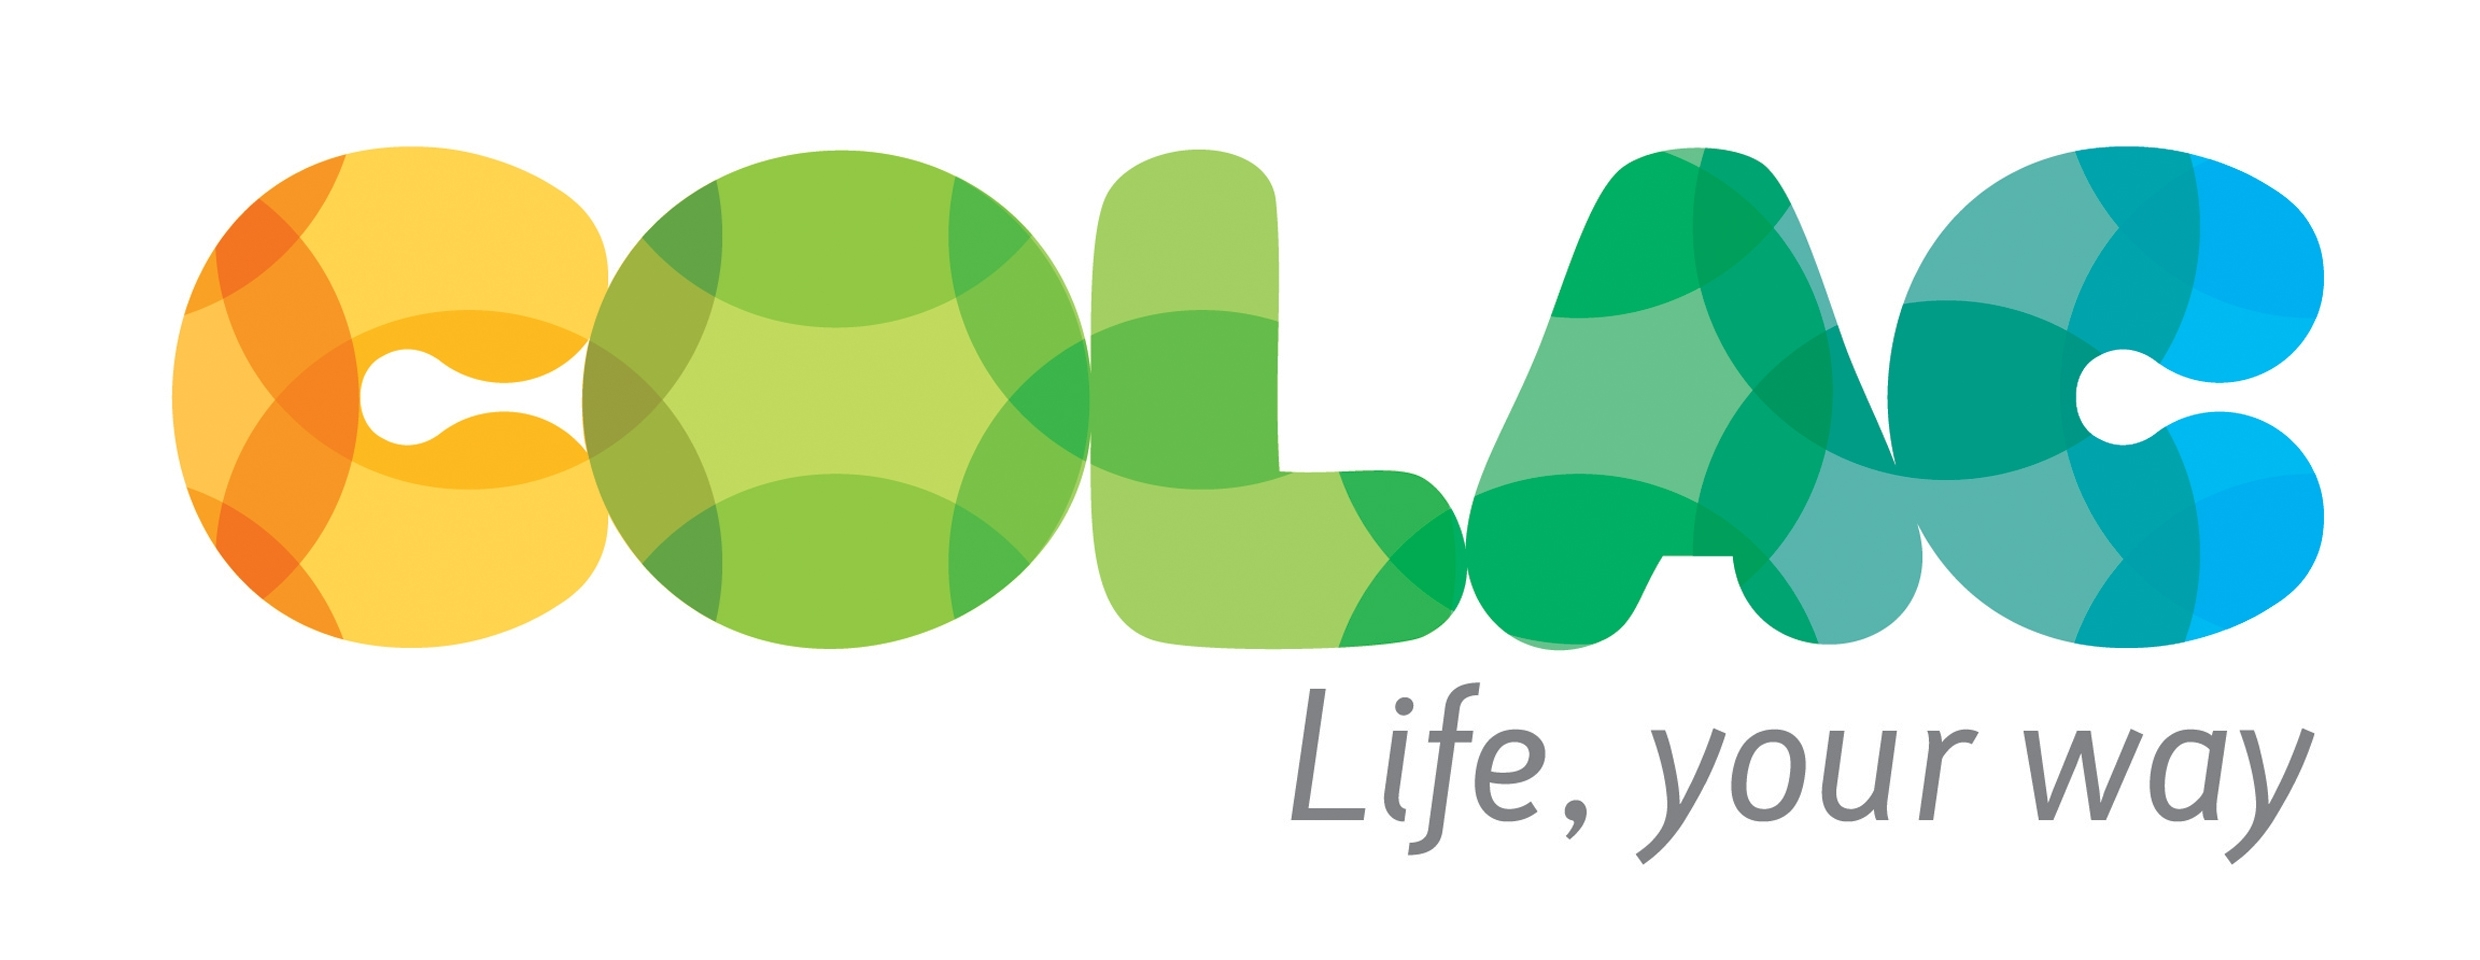 Colac Life, your way logo